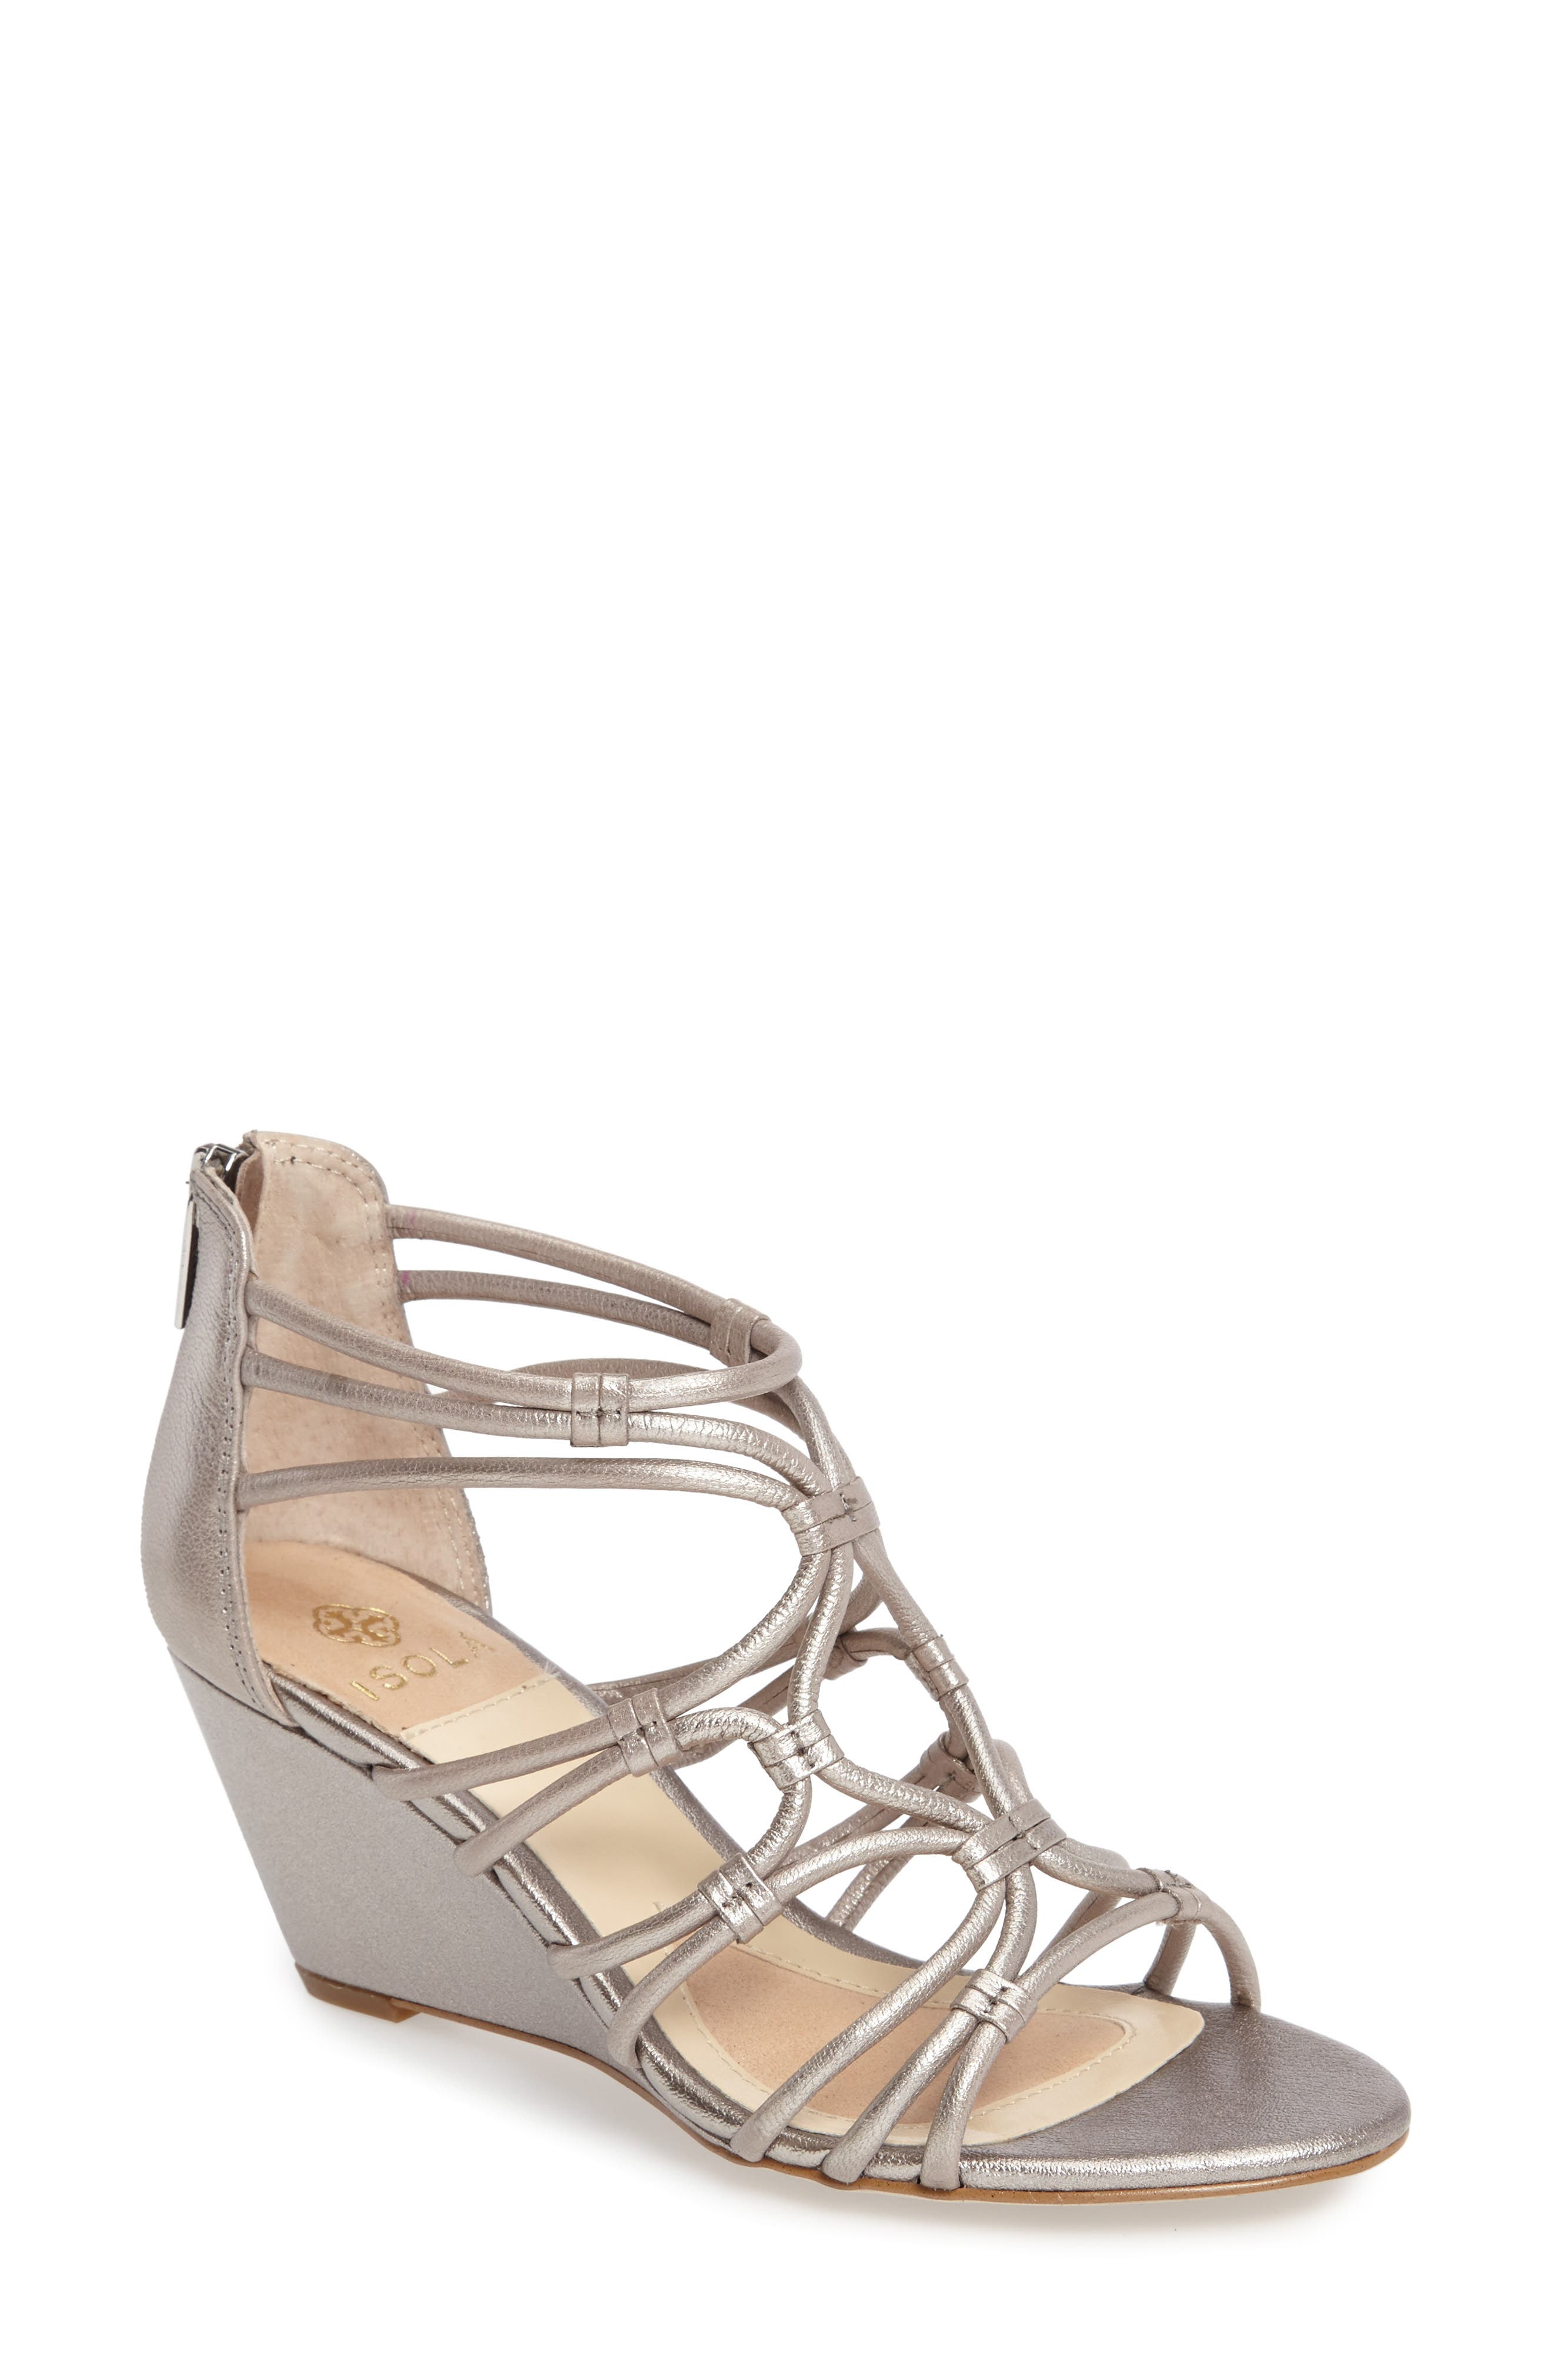 Floral Strappy Wedge Sandal,                         Main,                         color, ANTHRACITE LEATHER